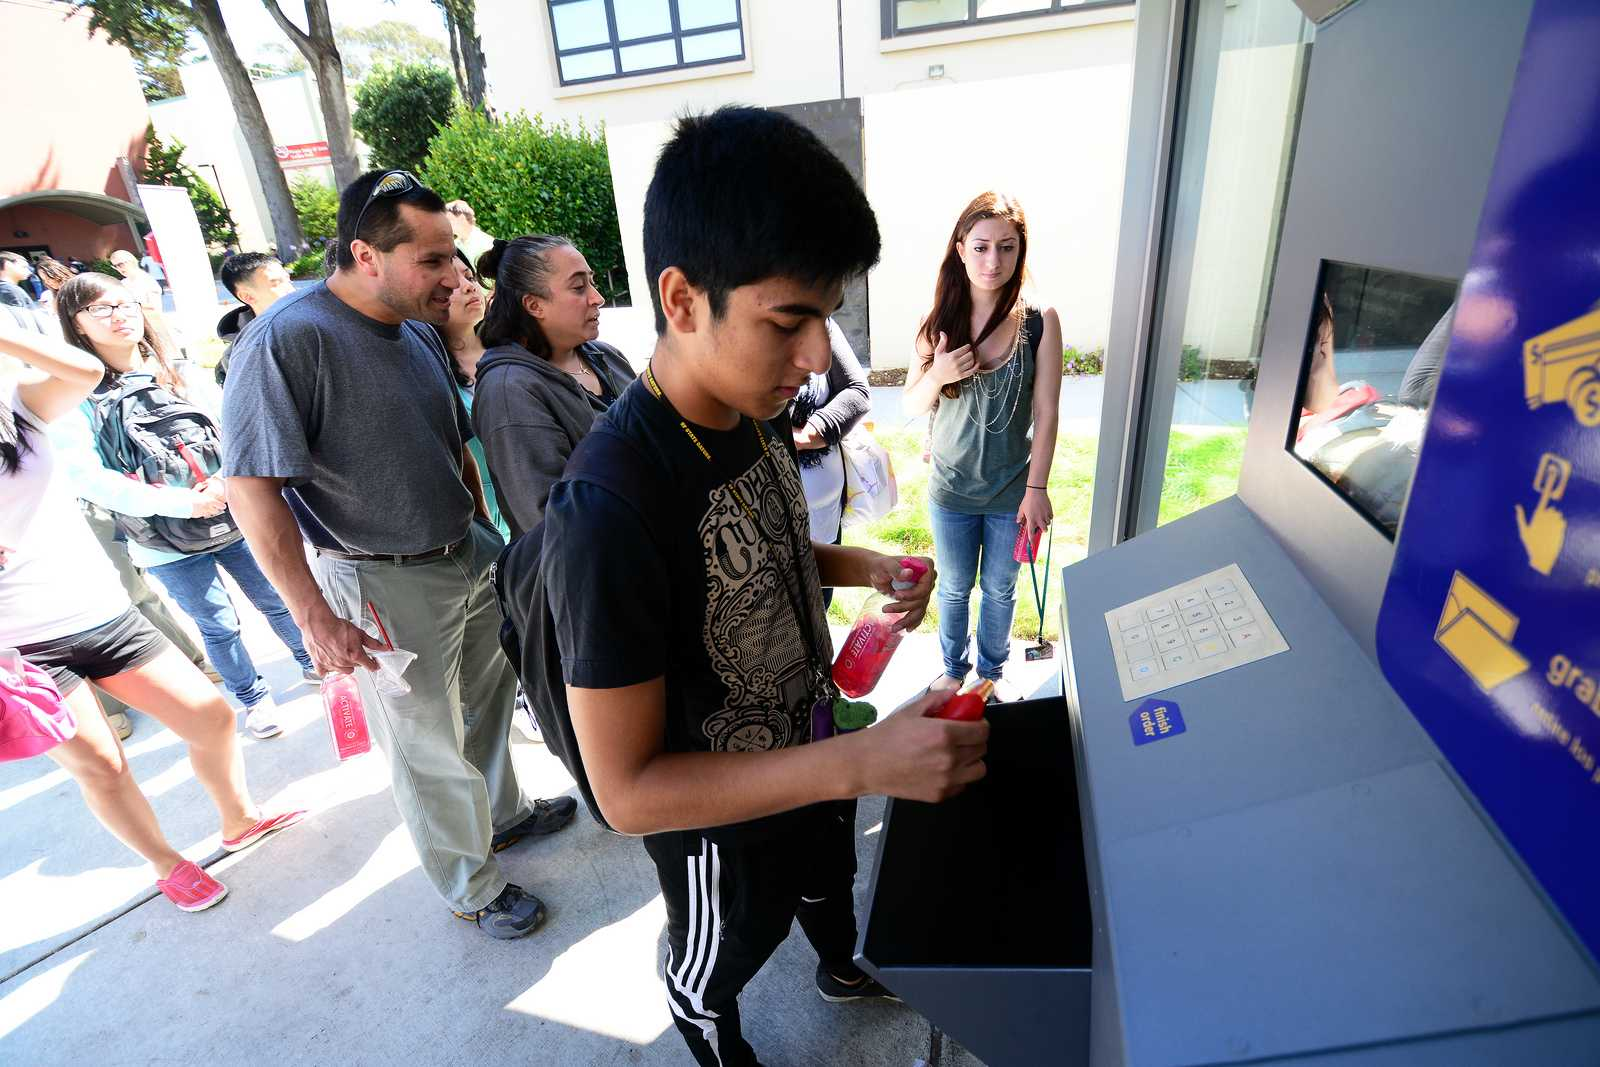 New 24-hour vending machine provides students with convenience goods